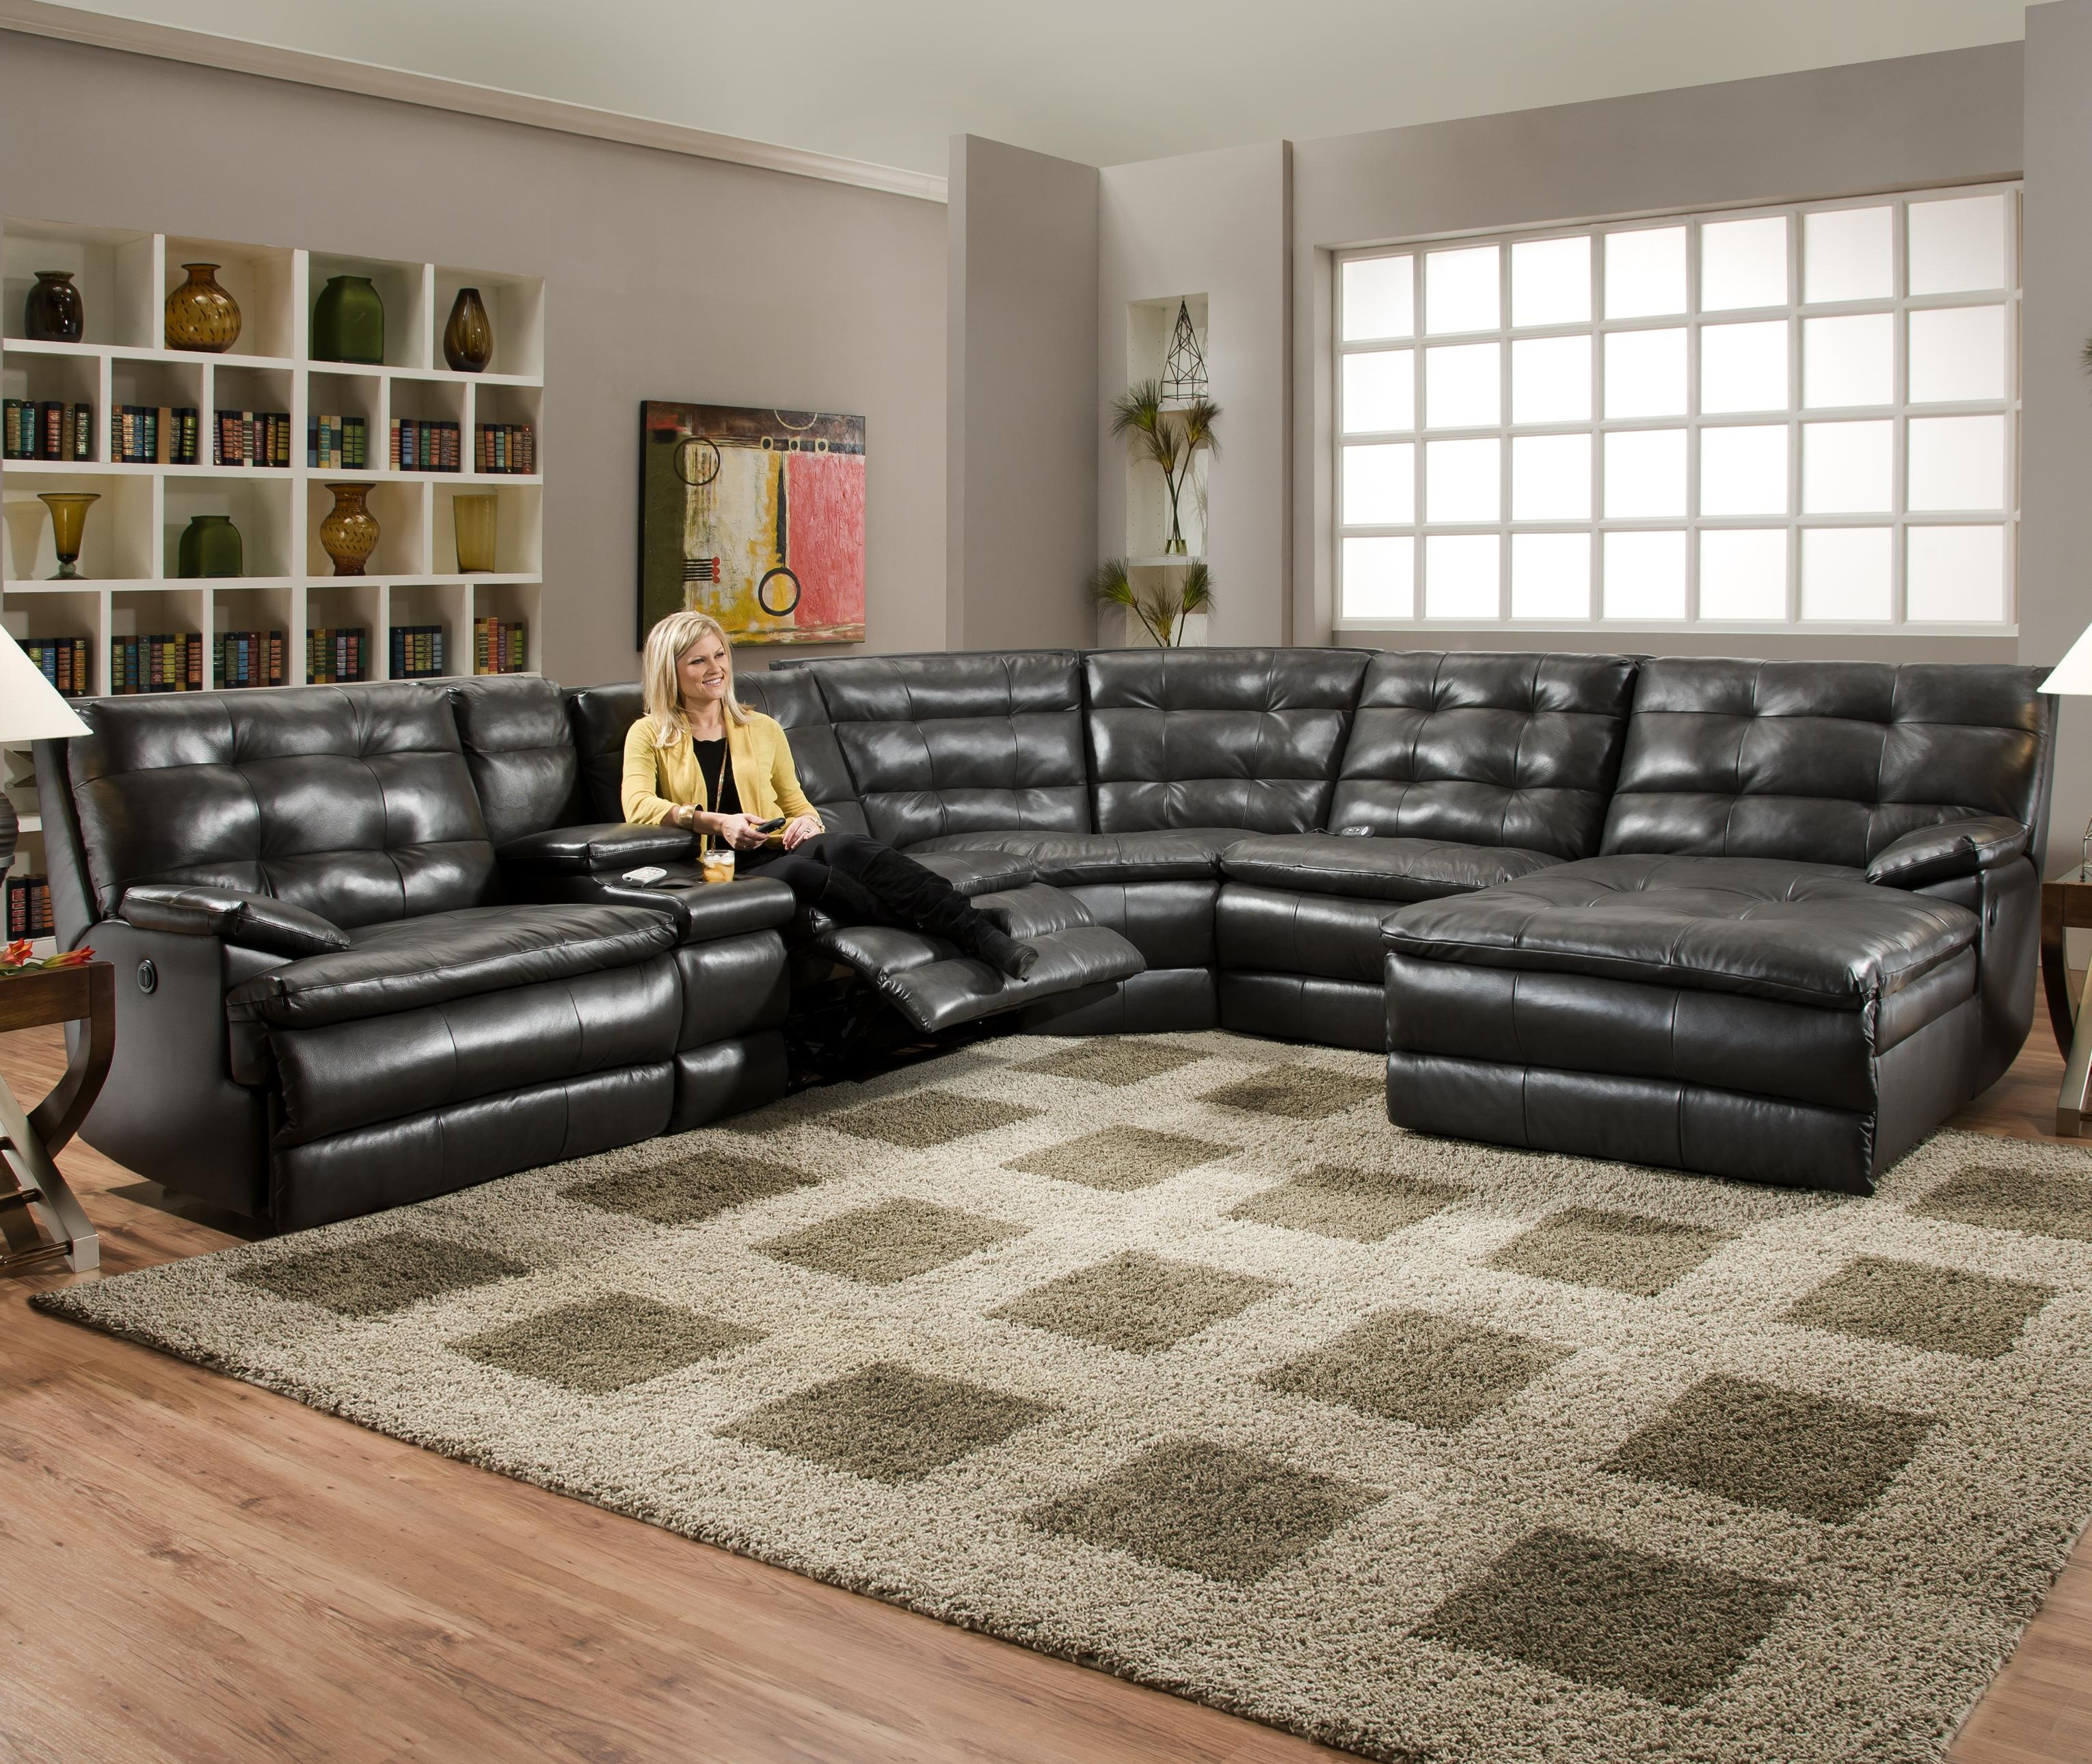 Sofas And Sectionals Sofas And Sectionals Couch With Recliners Throughout Big Sofas Sectionals (#10 of 12)